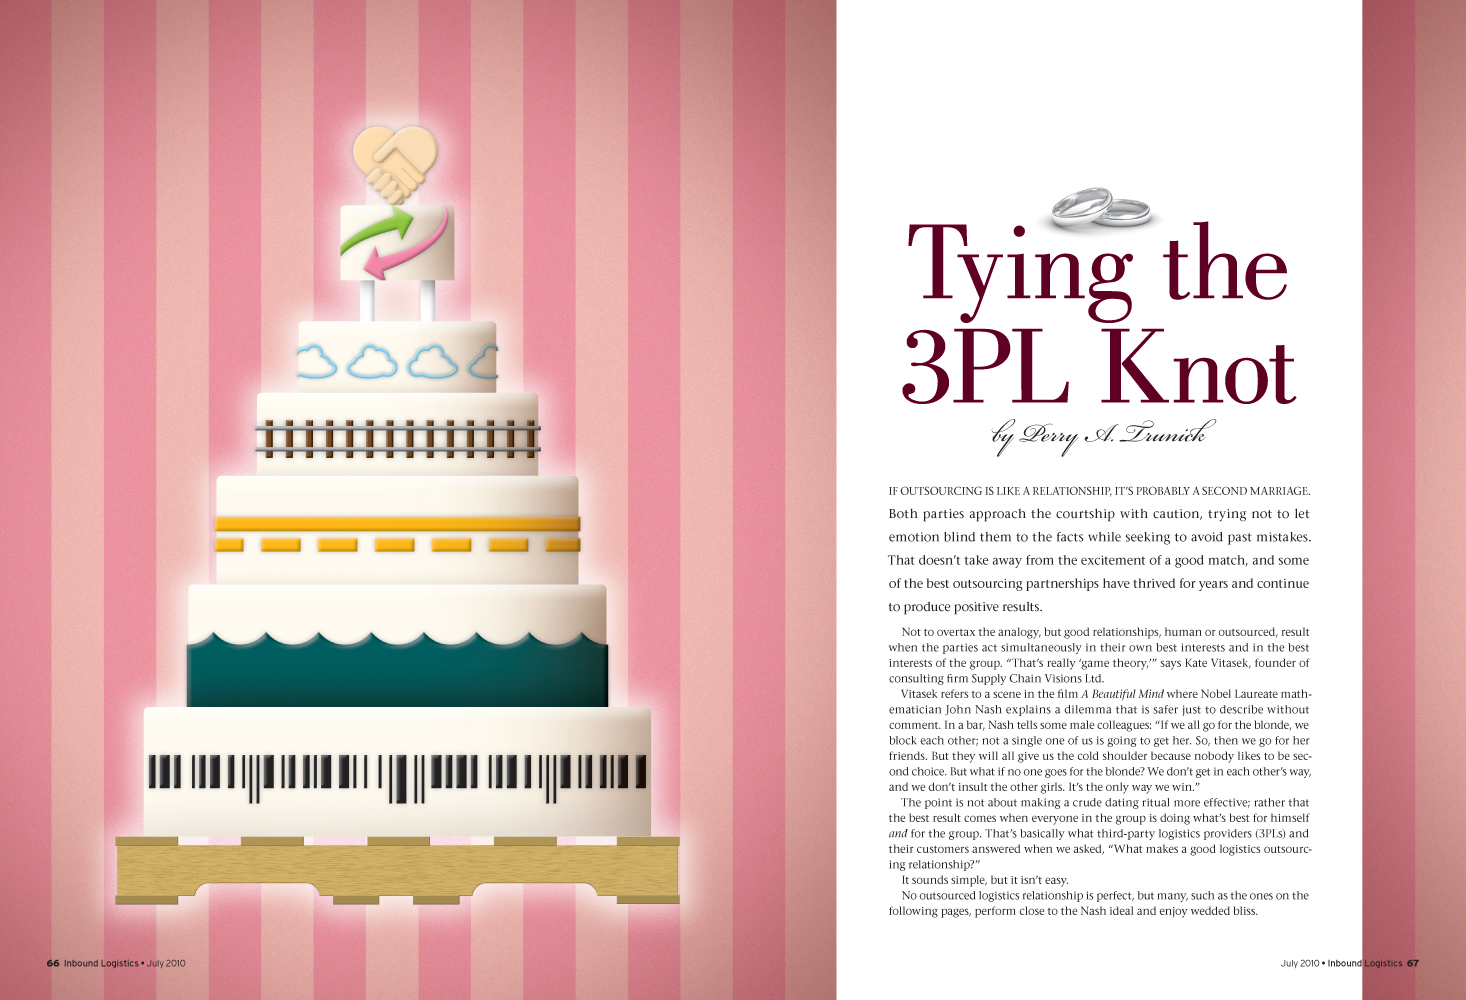 Tying the 3PL Knot Feature Story Opening Spread